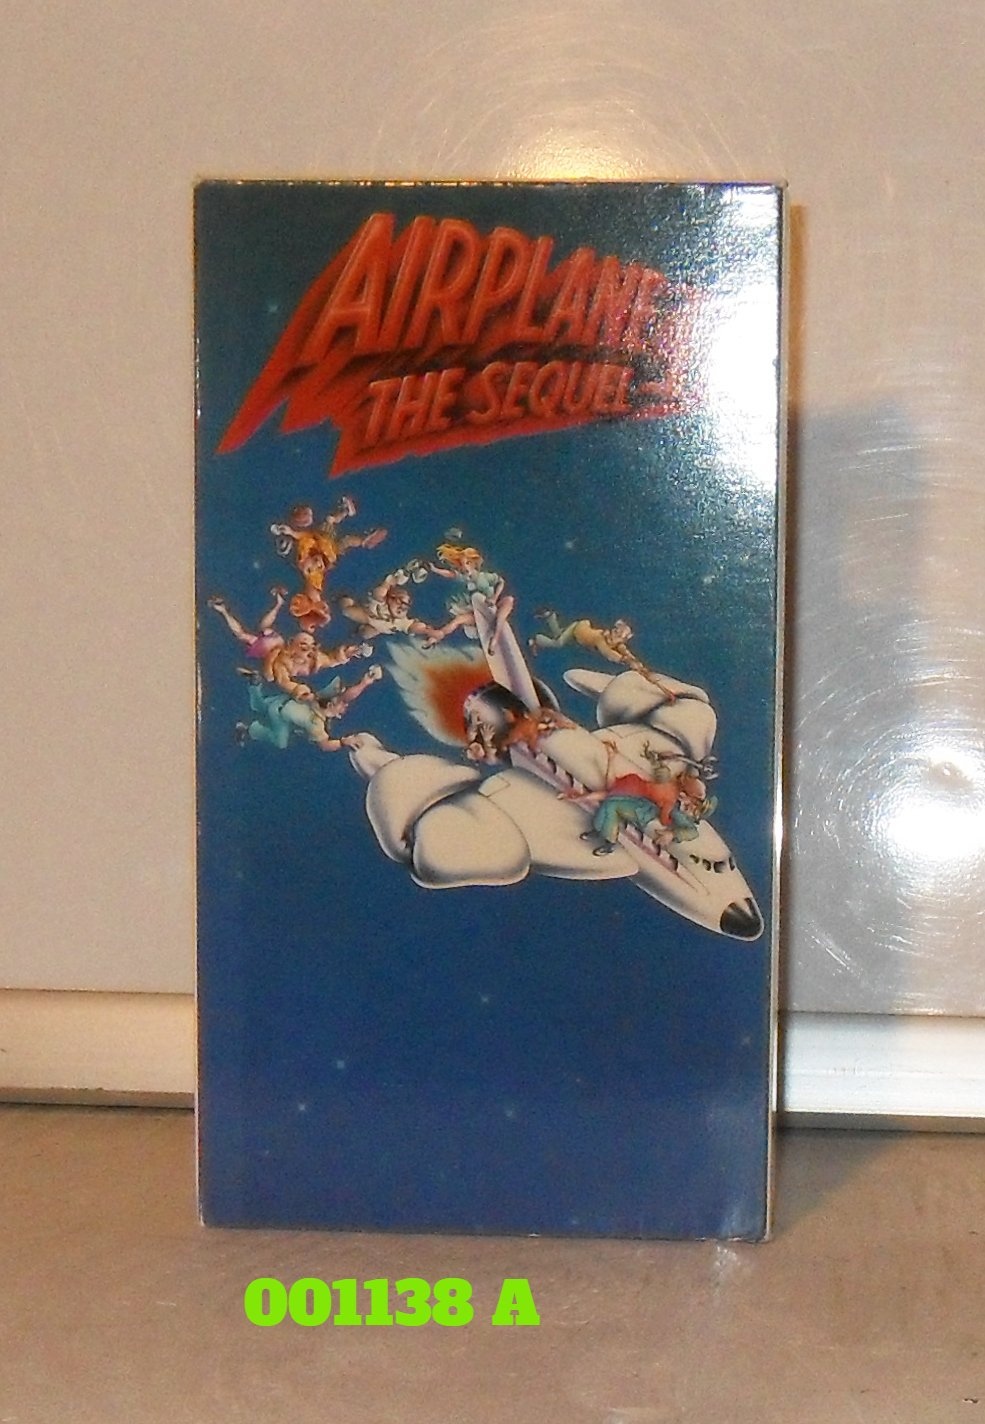 VHS - AIRPLANE  (02)  SEQUEL, THE